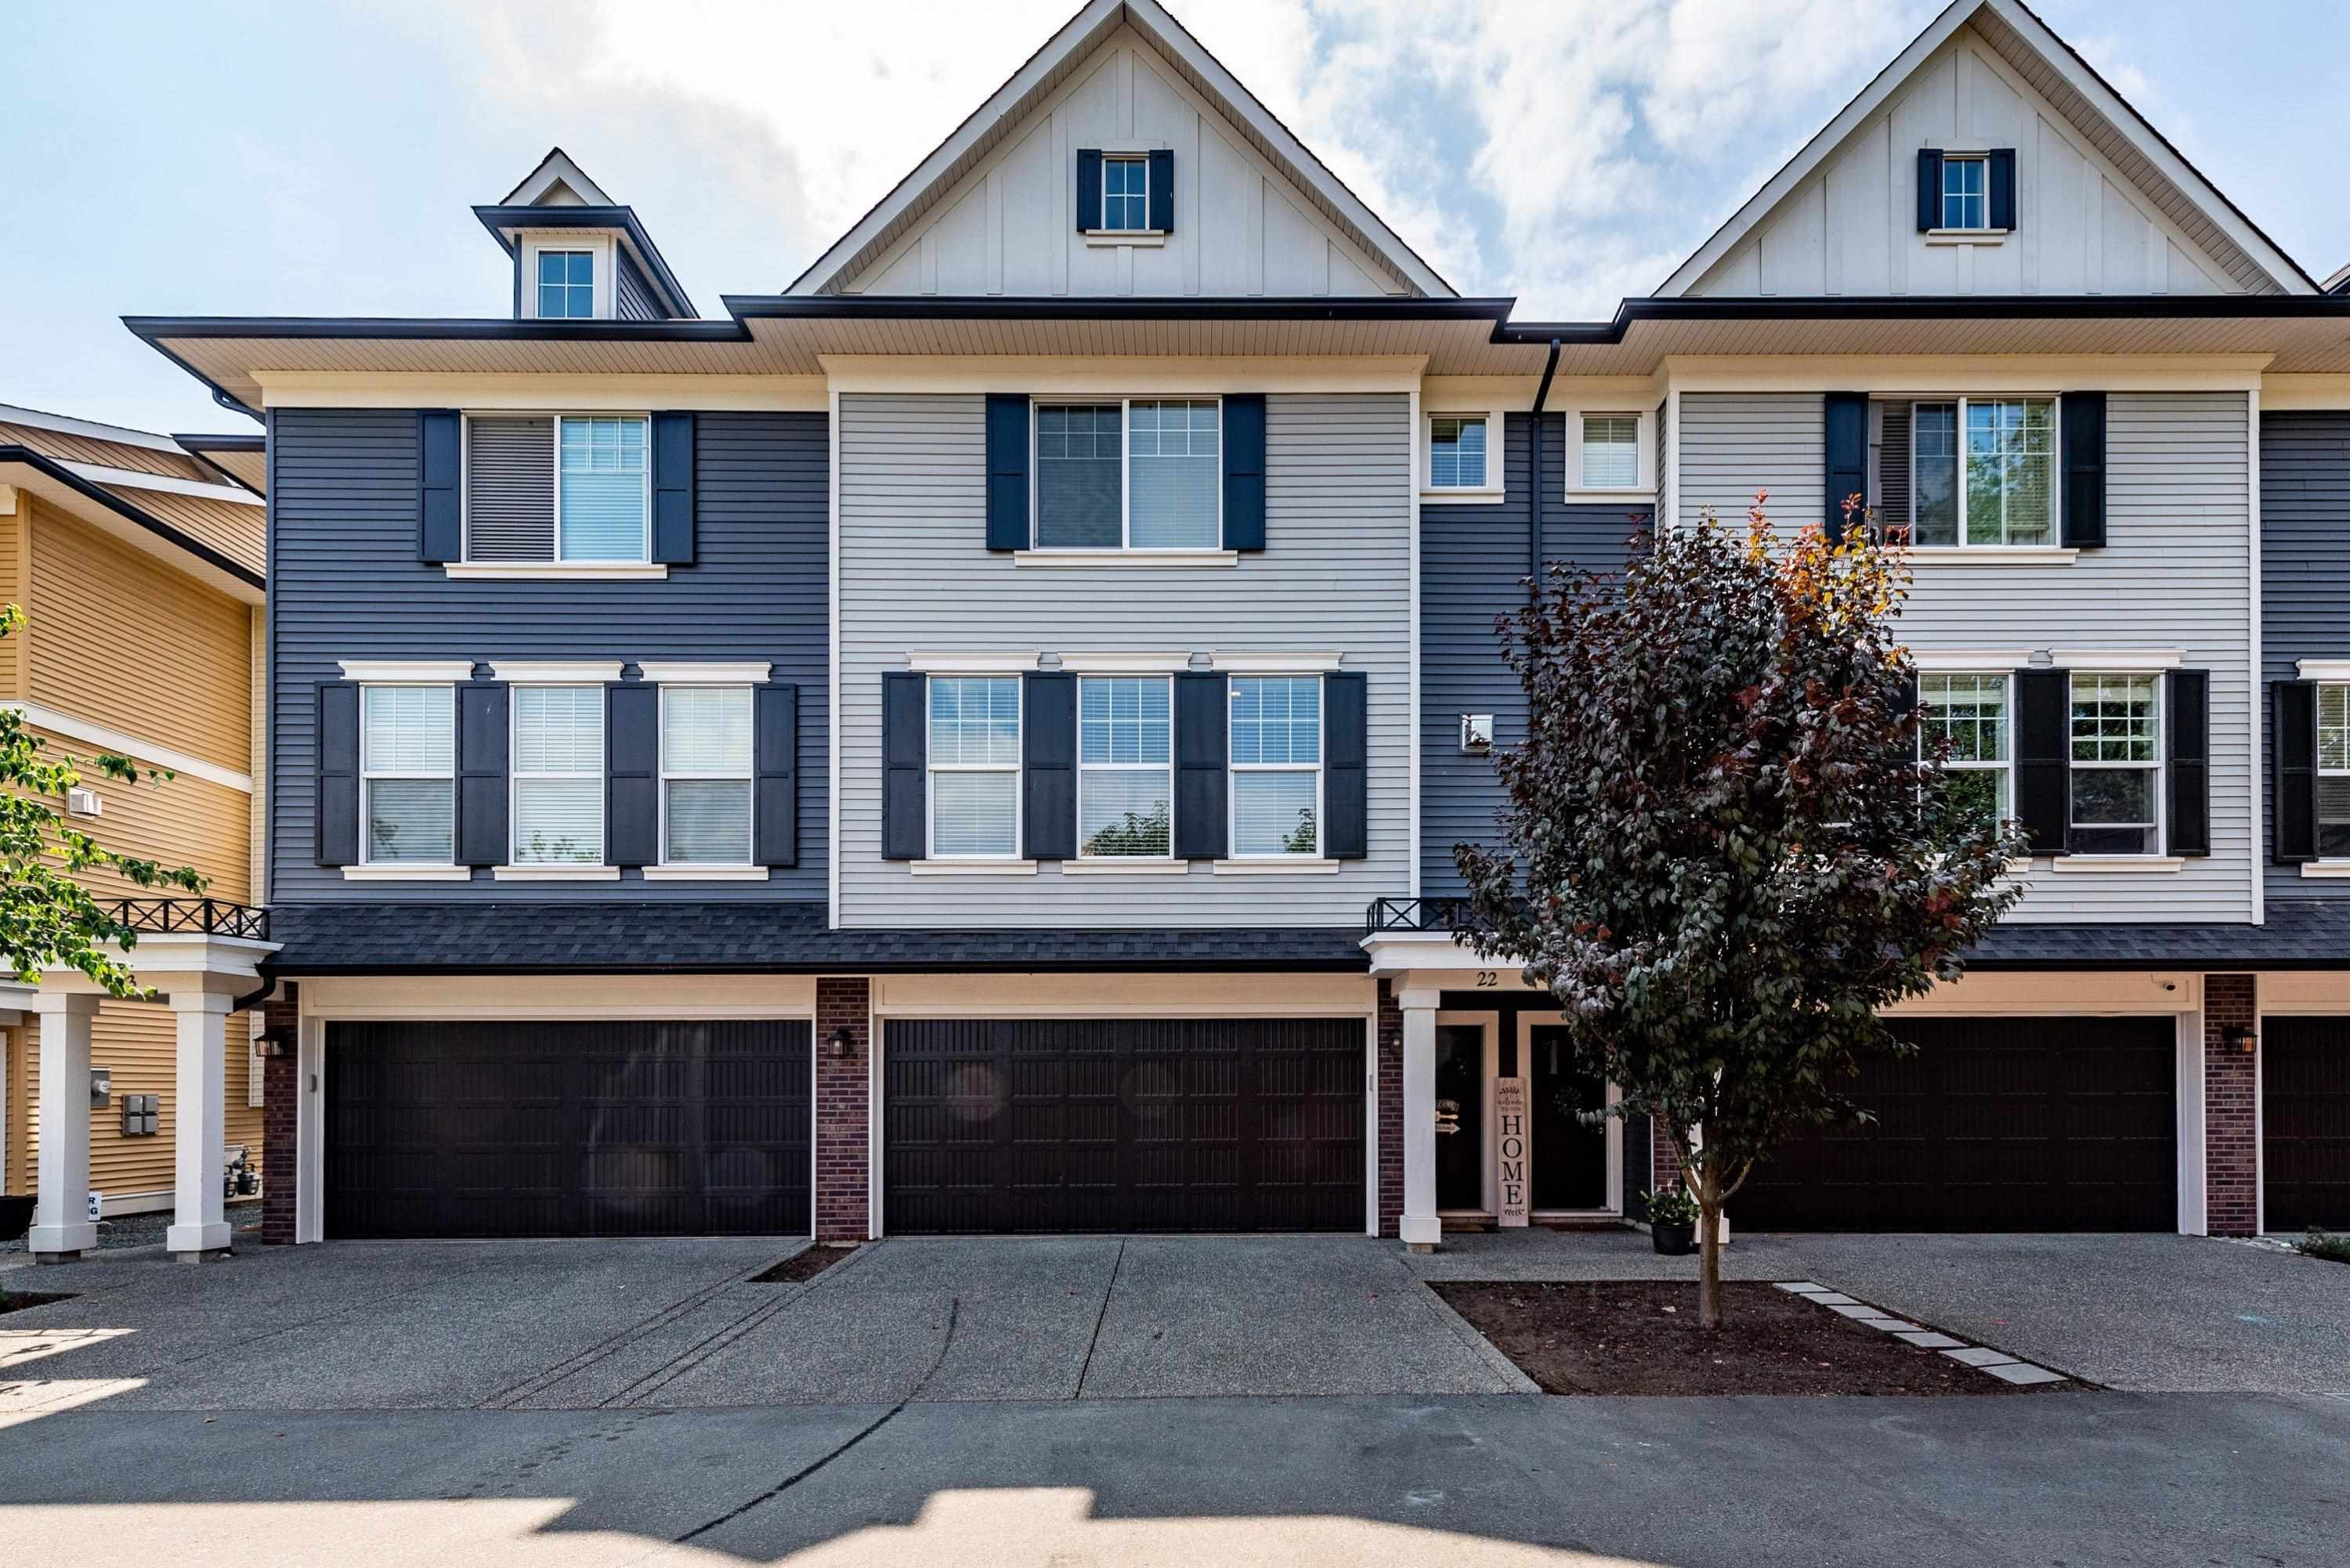 """Main Photo: 22 1640 MACKAY Crescent: Agassiz Townhouse for sale in """"The Langtry"""" : MLS®# R2610856"""